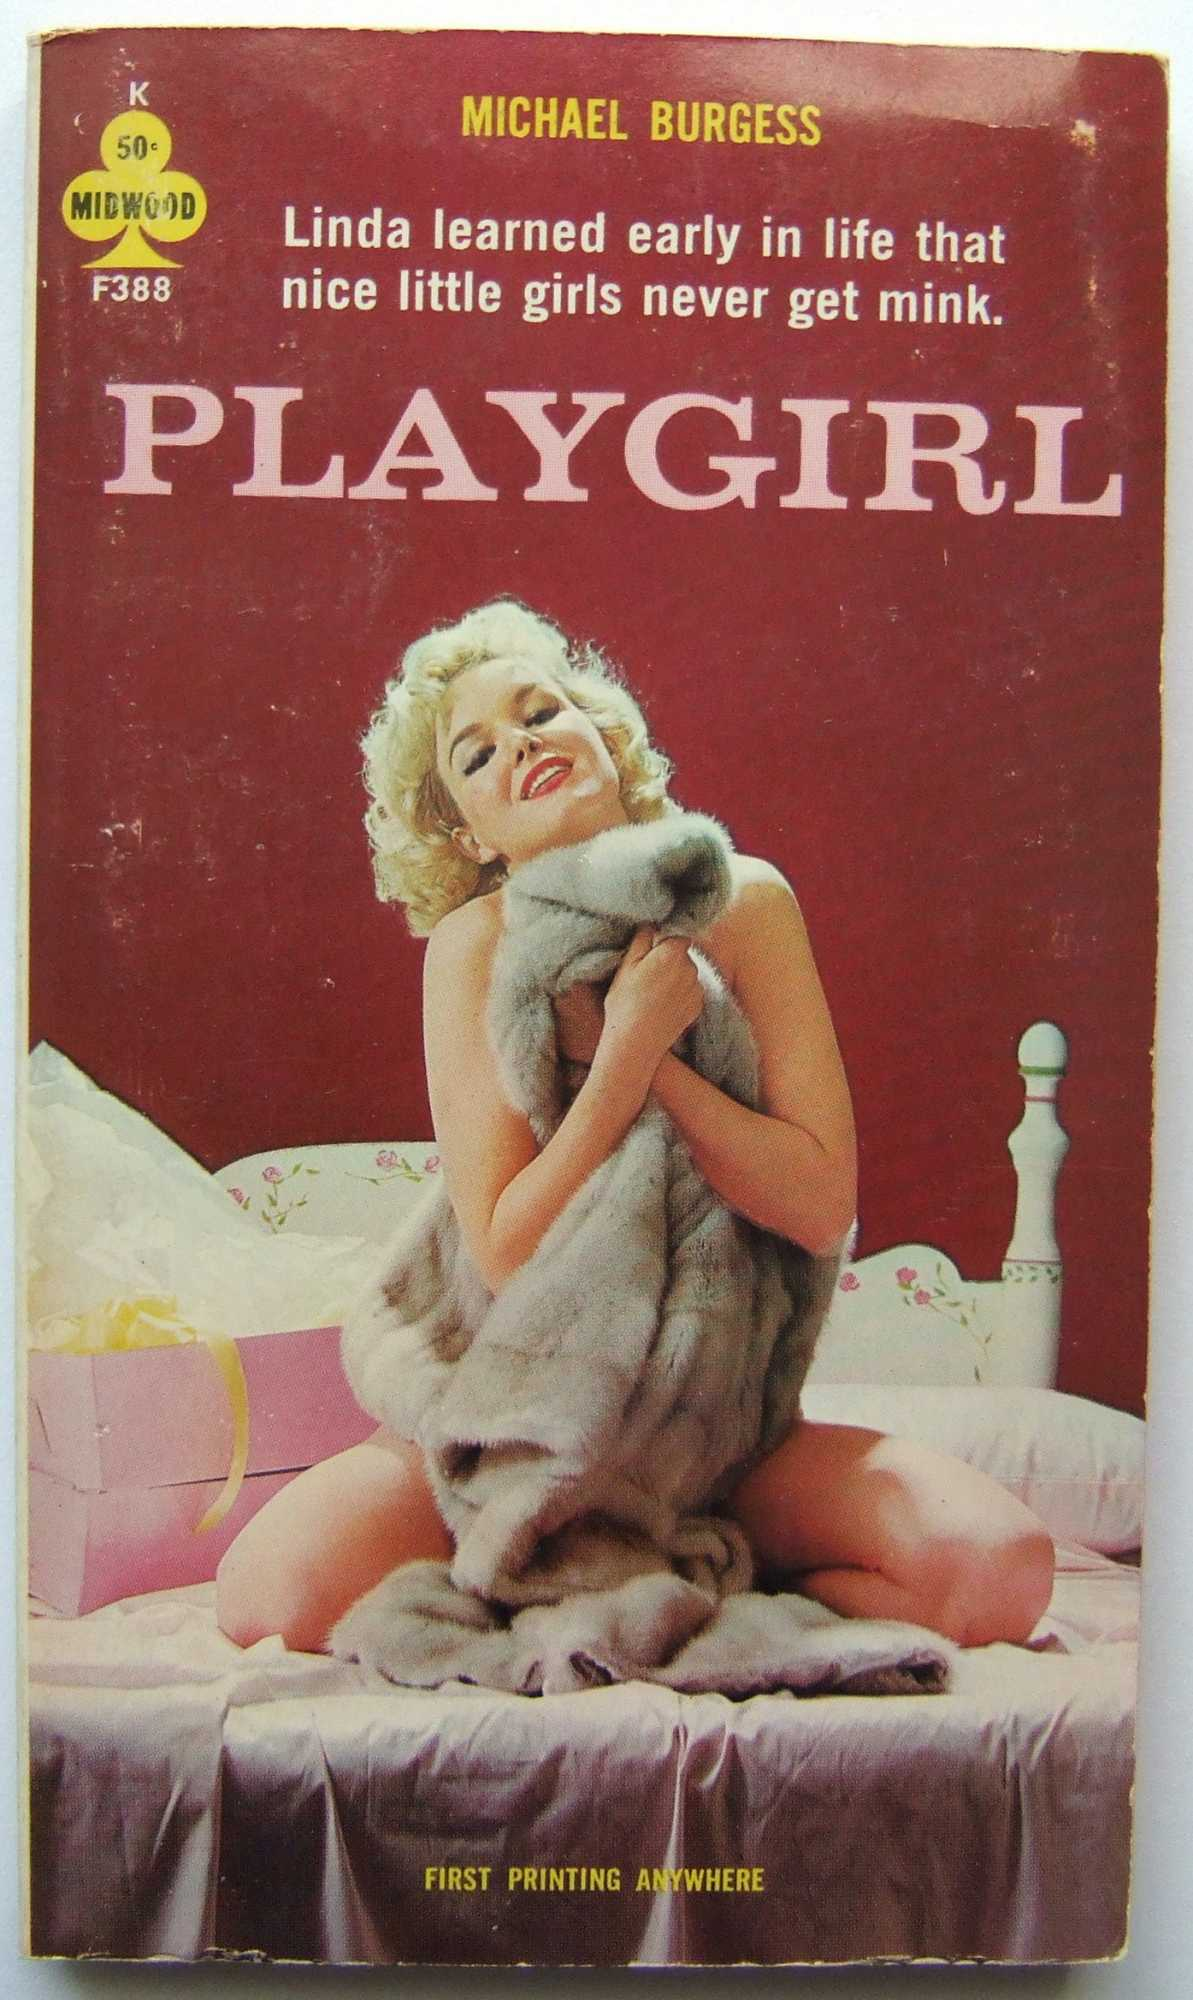 Playgirl, Burgess, Michael